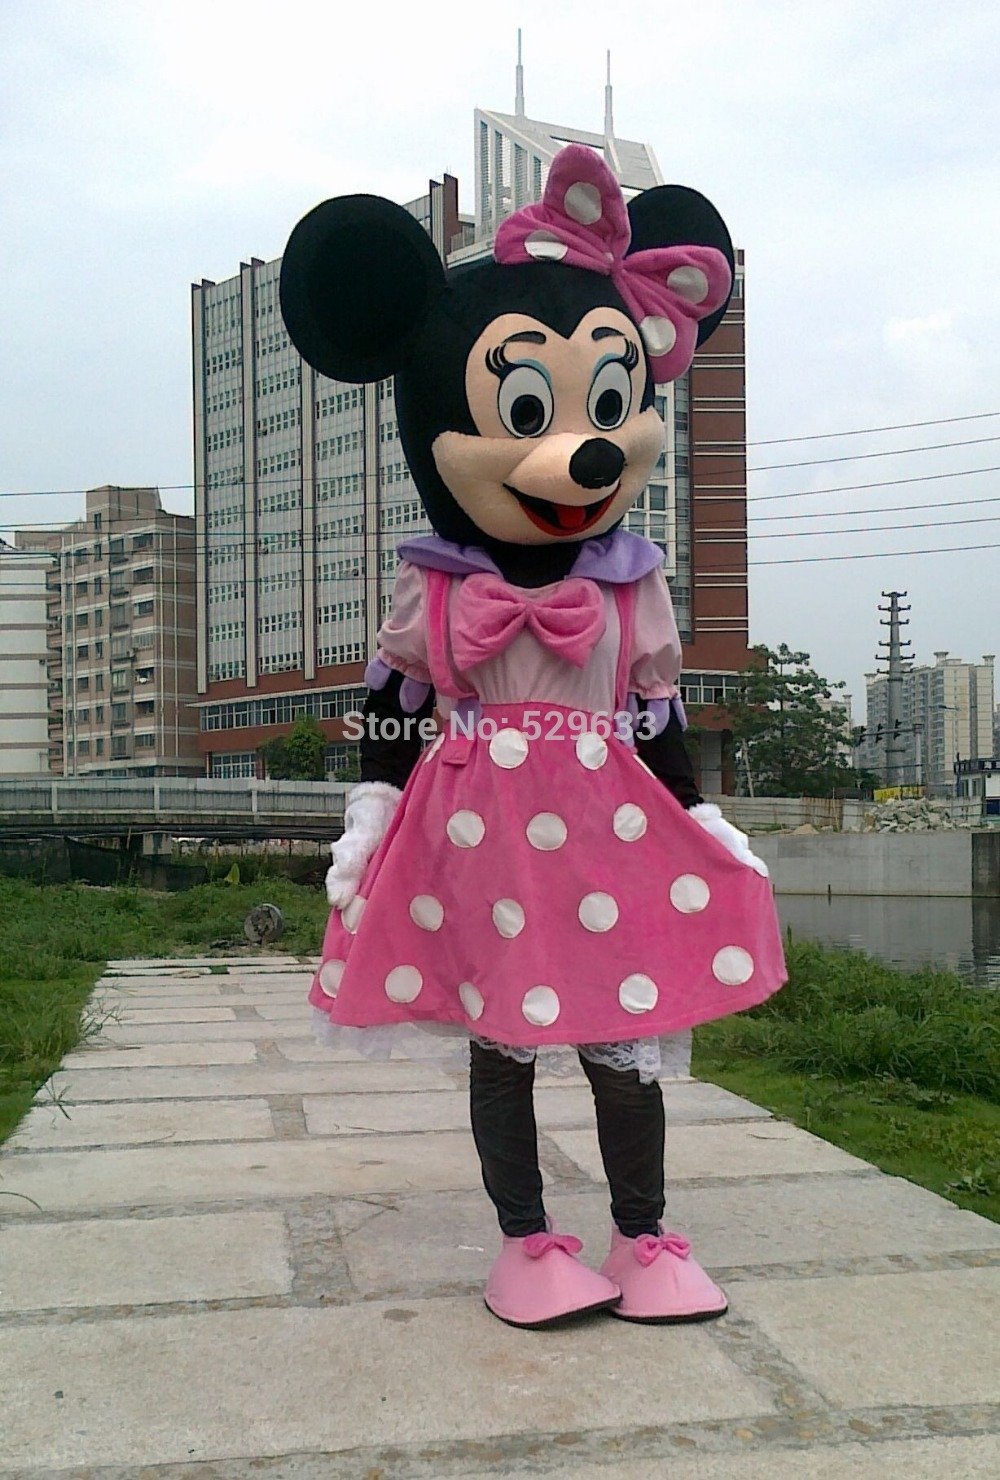 New 2015 Hot Sales Adult Party Dress Version Minnie Mascot Costume Pink Min nie Mouse Mascot Costume Free Shipping(China (Mainland))